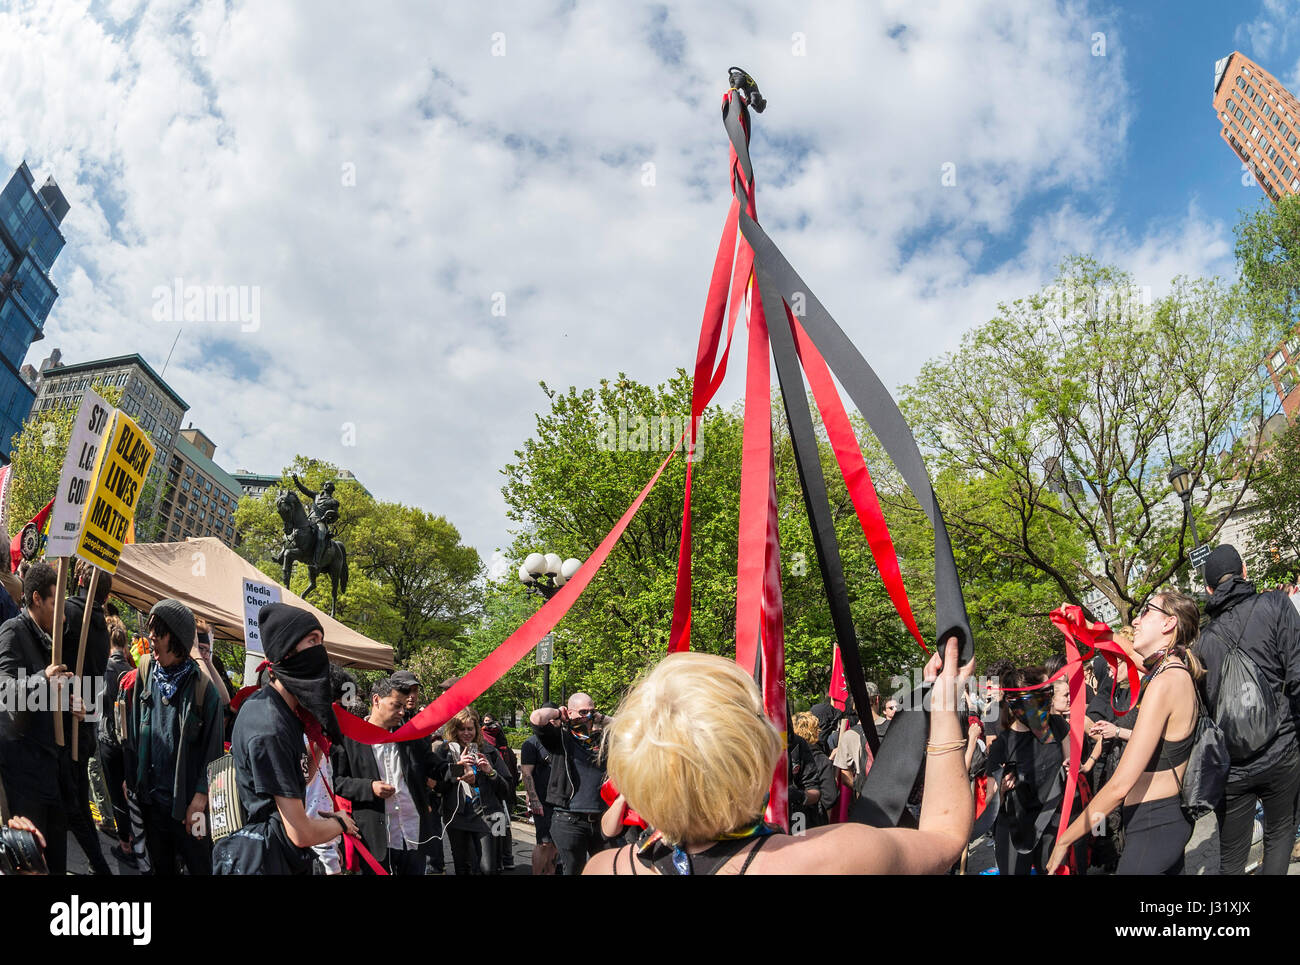 New York, NY 1 May 2017 - Anarchists dance around a Maypole at a May Day/International Workers Day rally in Union - Stock Image